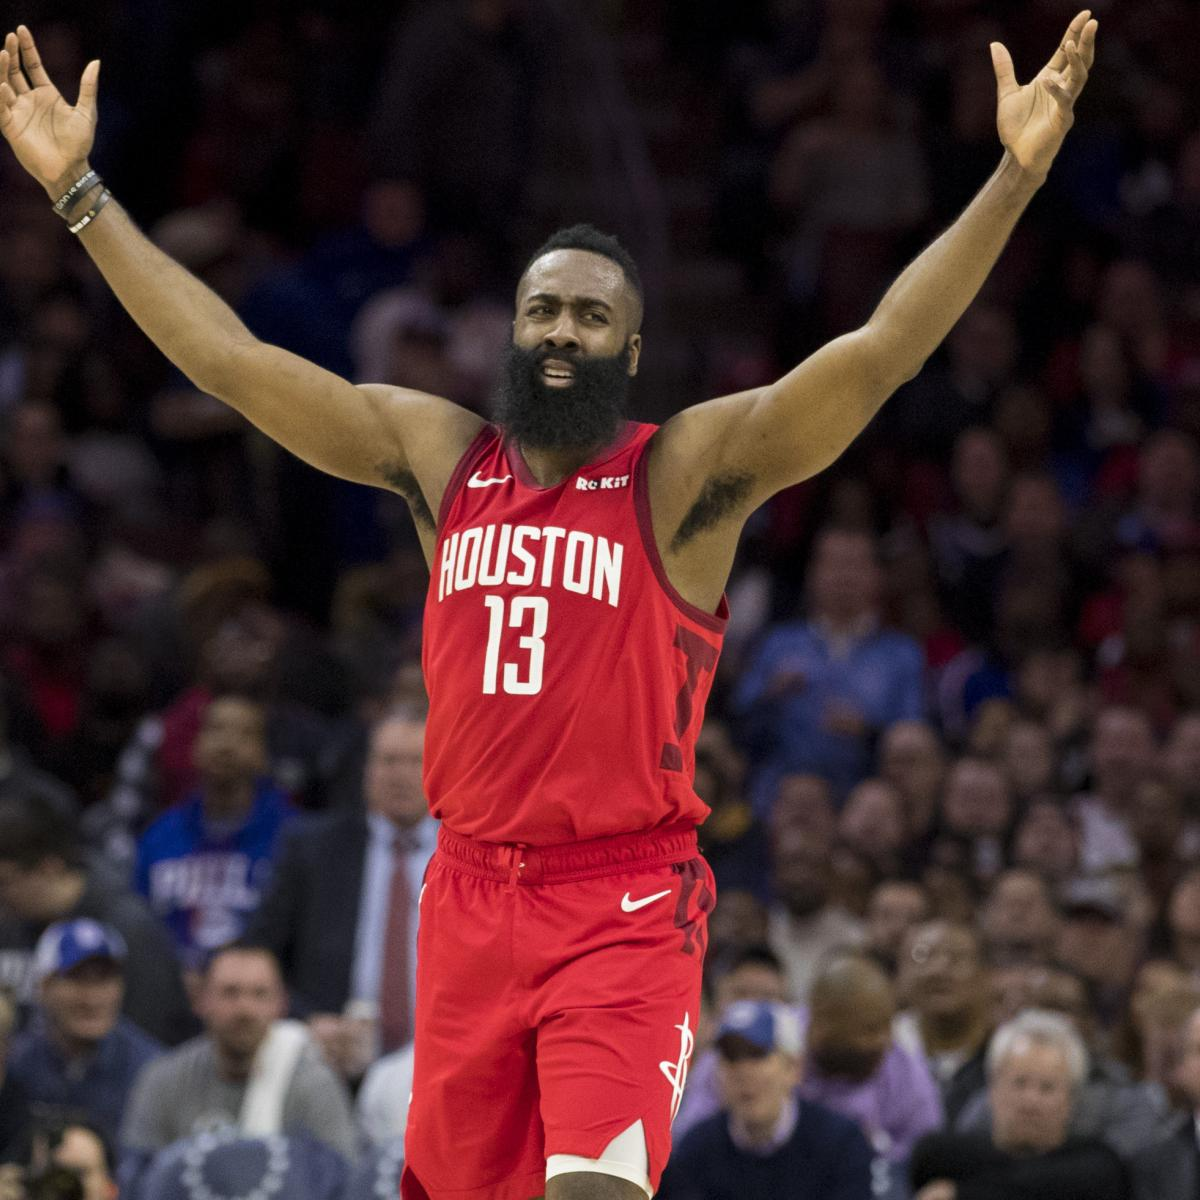 James Harden Latest News: Video: James Harden Scores At Least 30 Points For 20th